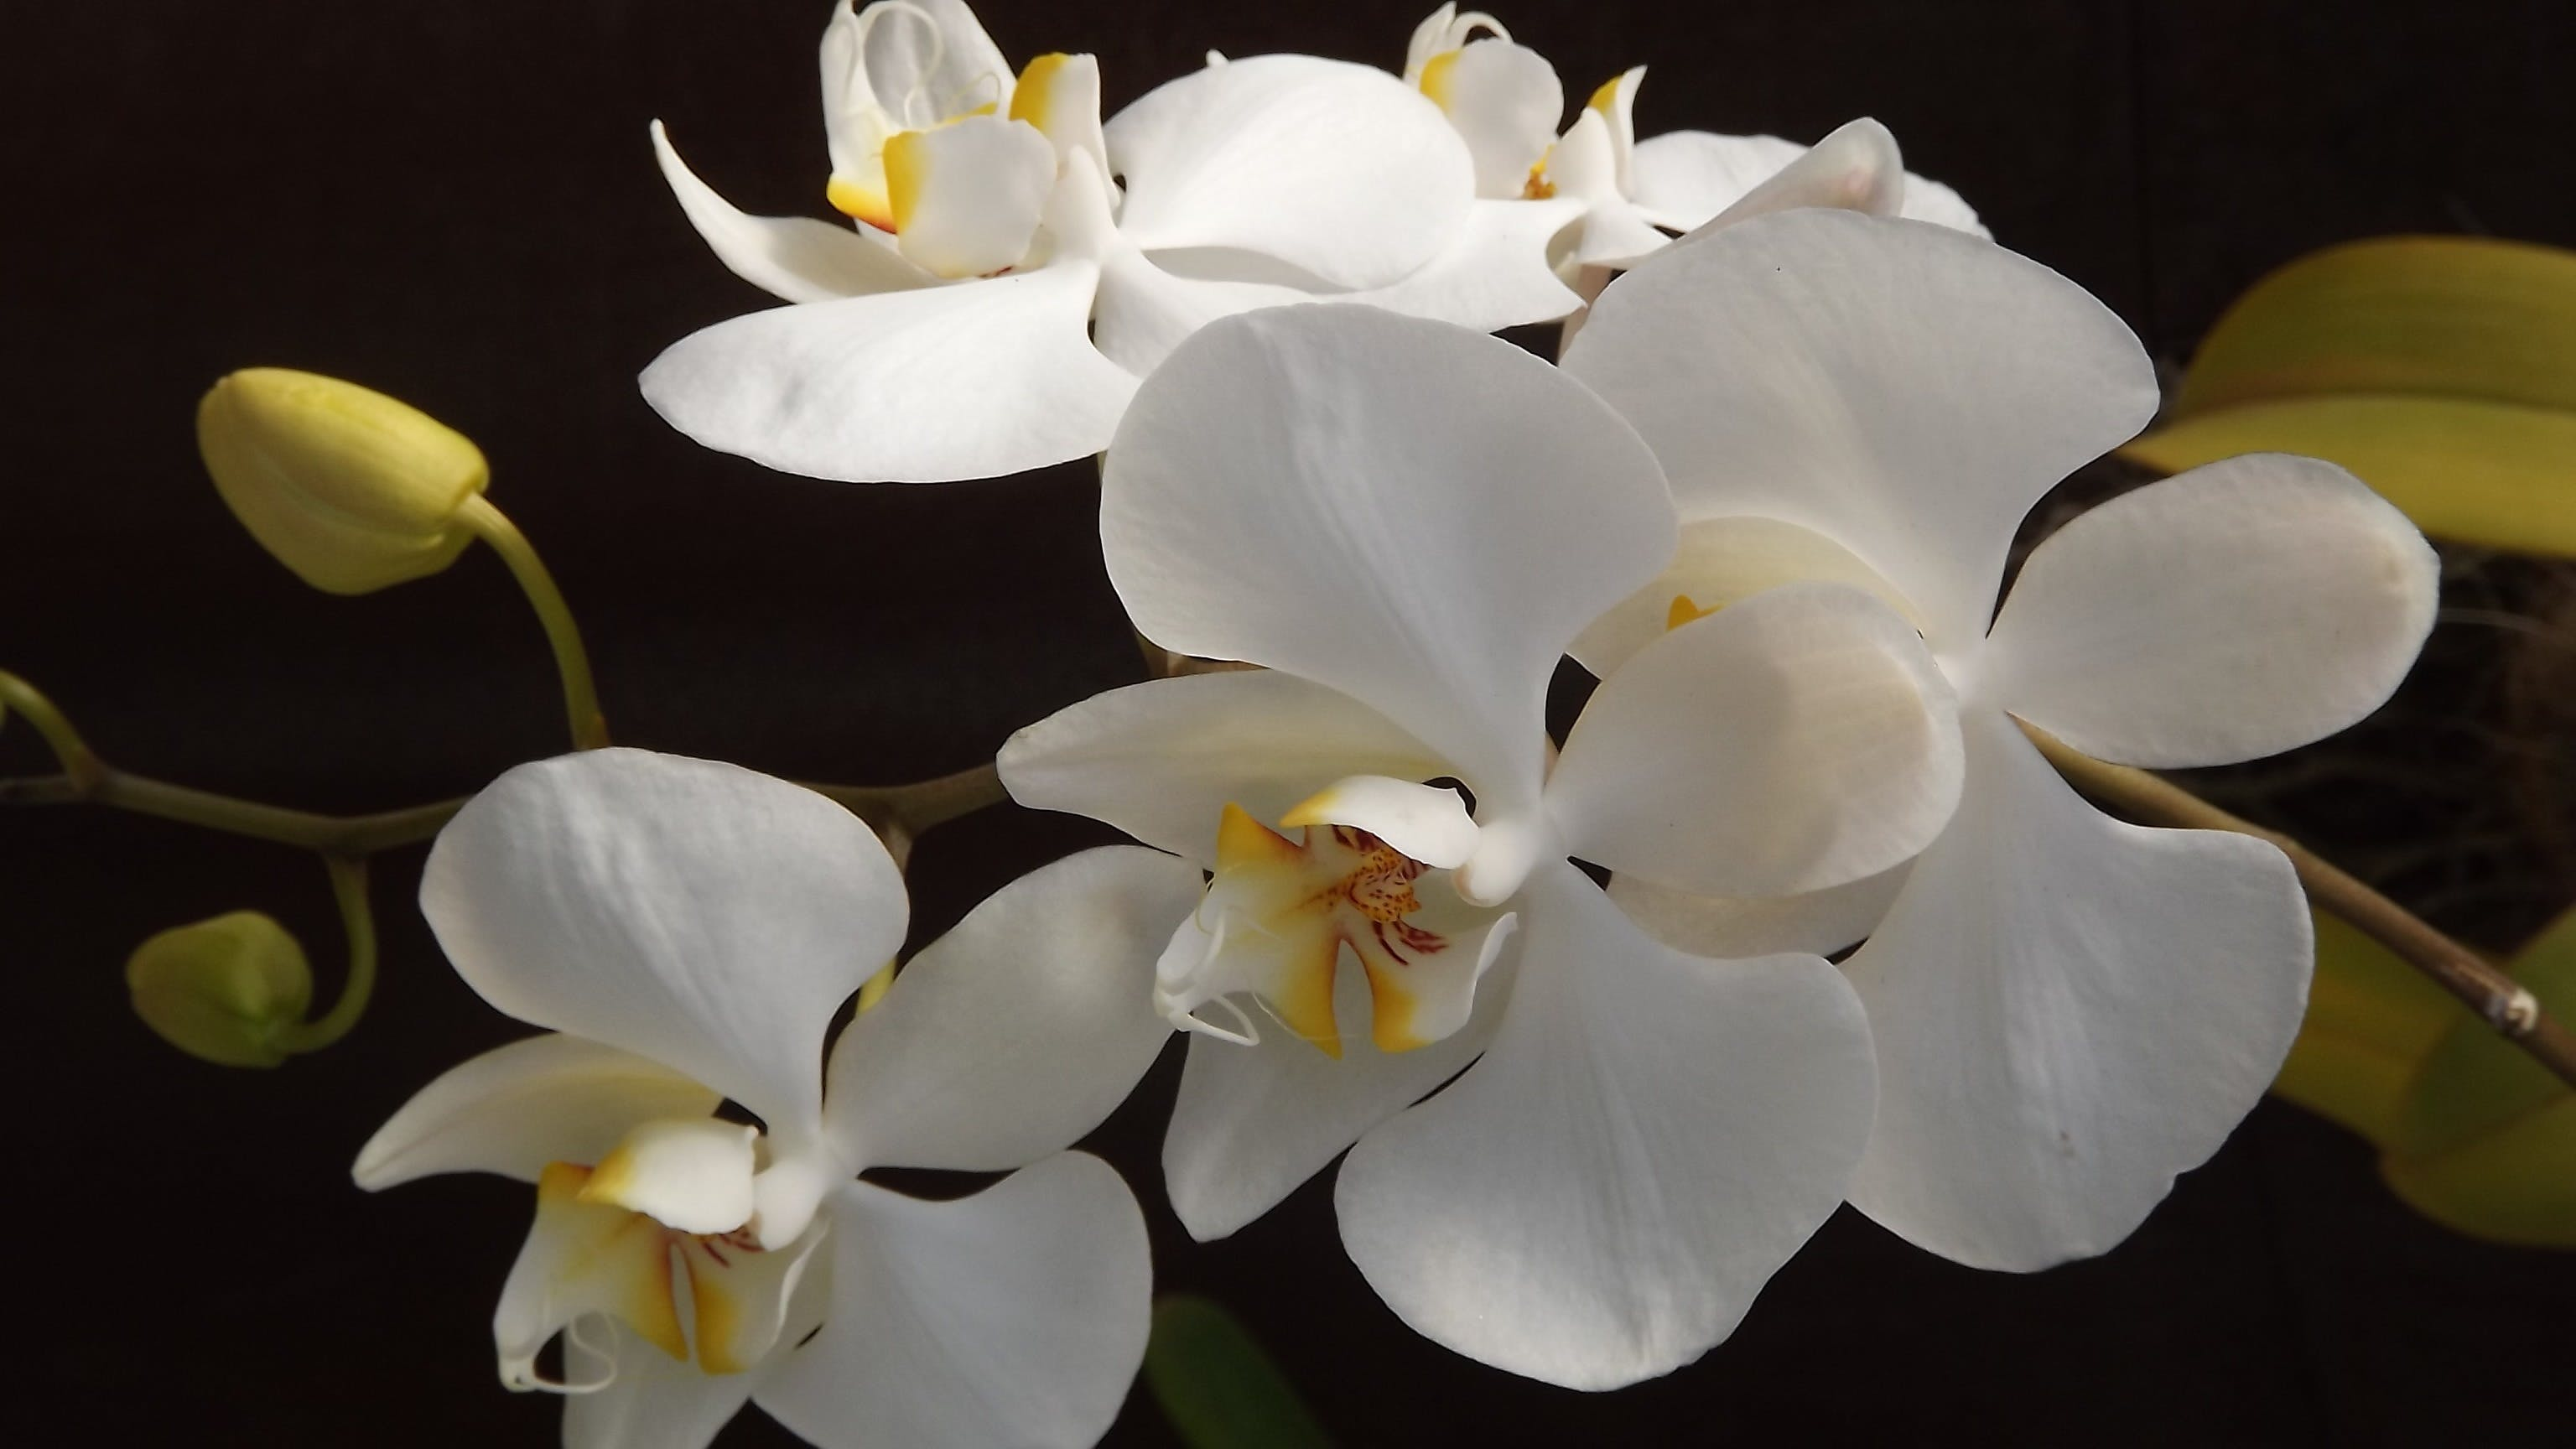 White and Yellow Orchid Flowers